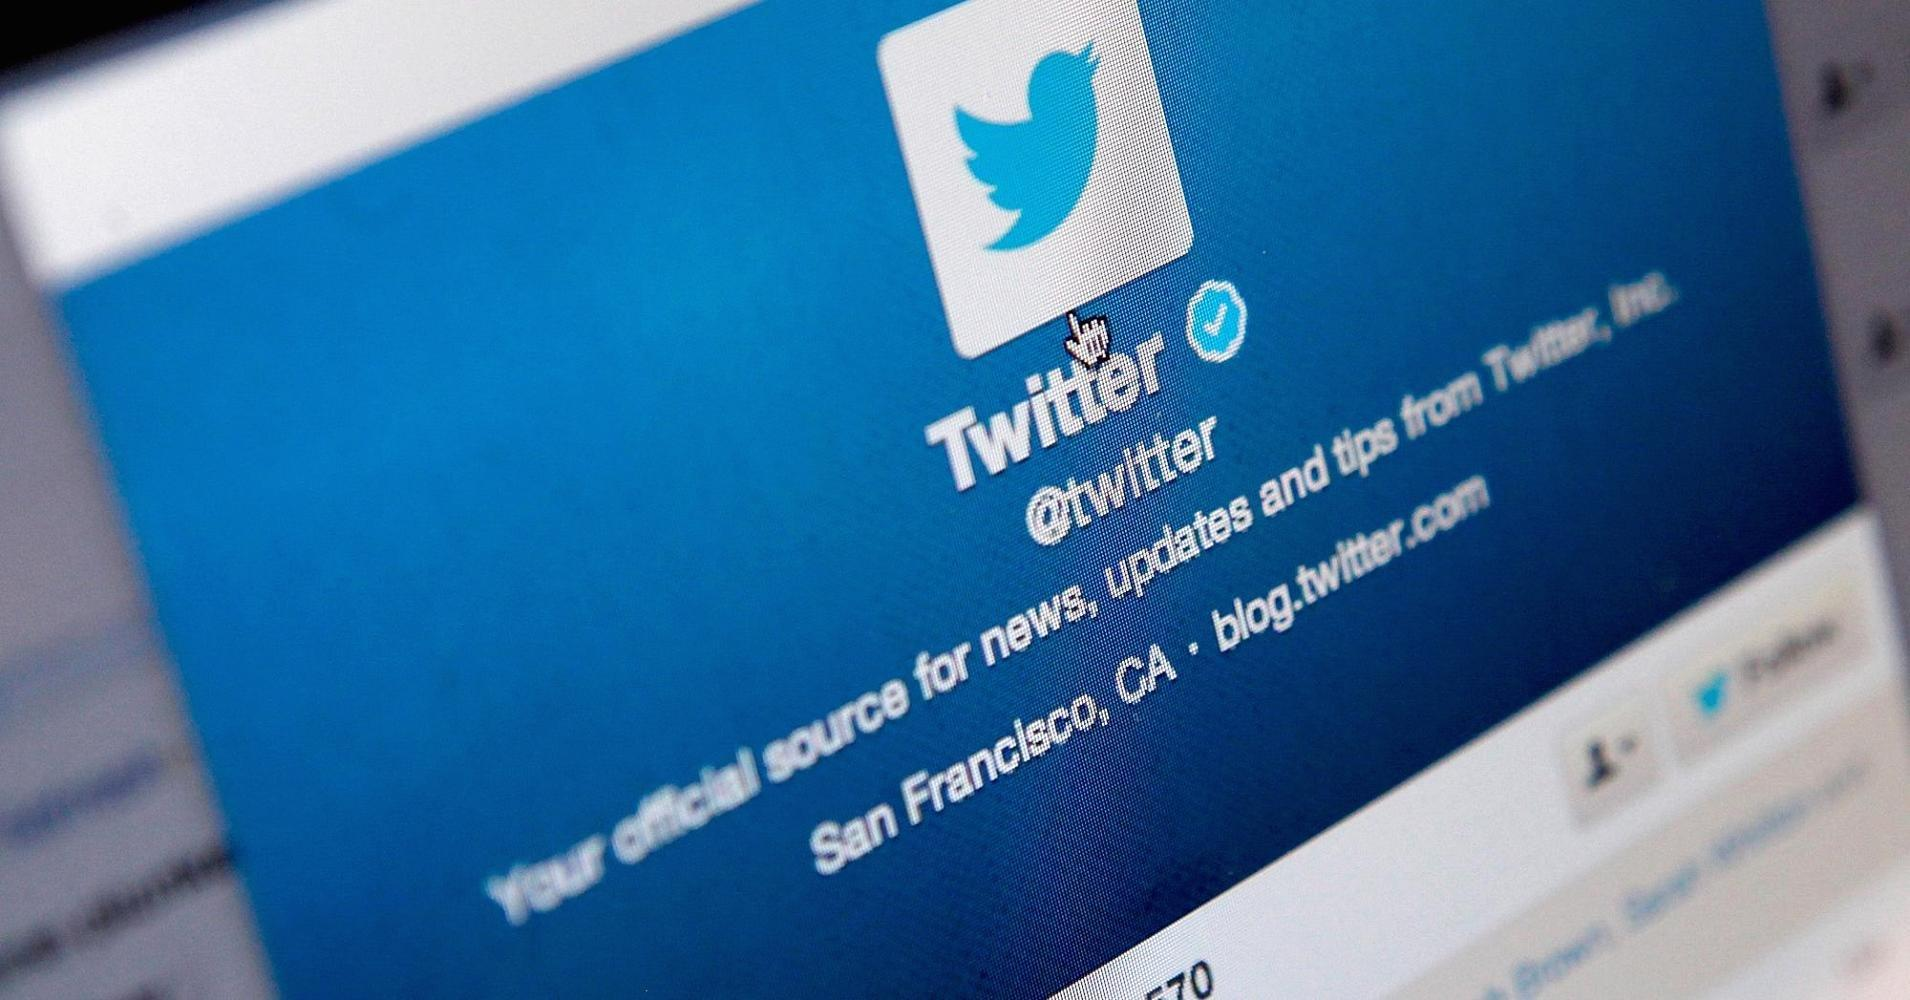 This will be huge for Twitter, says angel investor